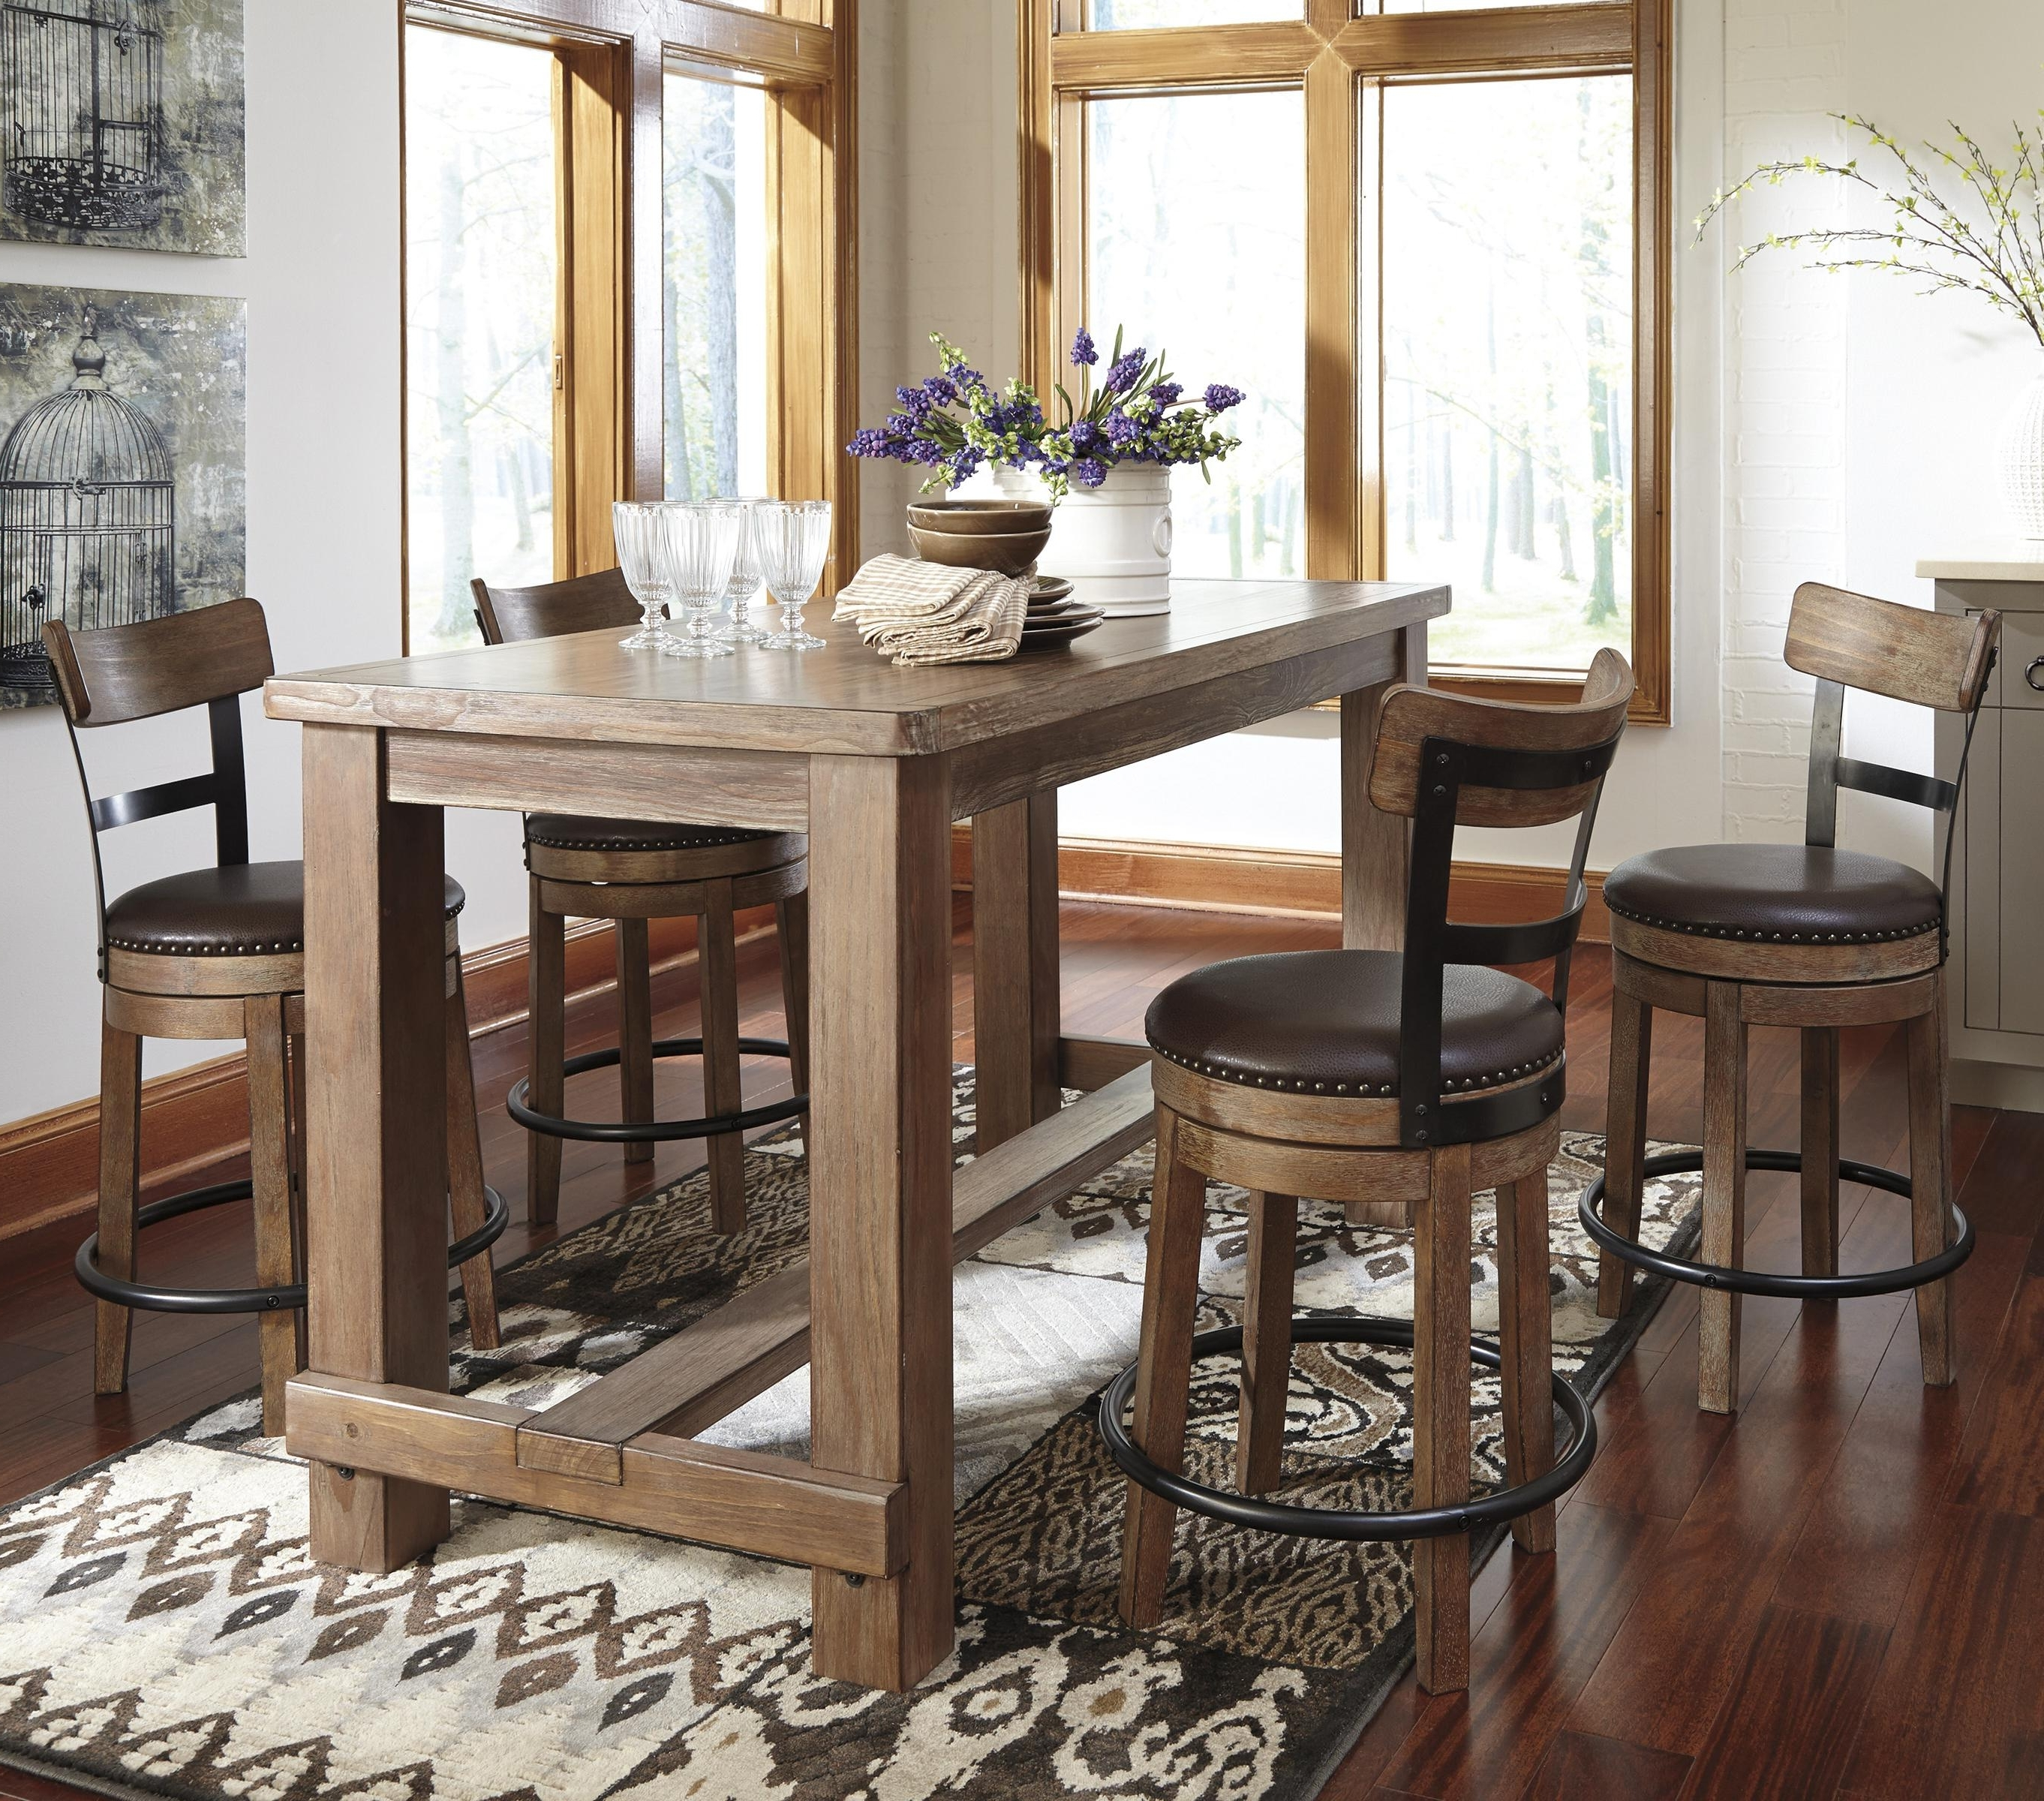 5 Piece Counter Table Set With Upholstered Swivel Stools With Wood Inside Famous Hyland 5 Piece Counter Sets With Stools (Gallery 9 of 25)